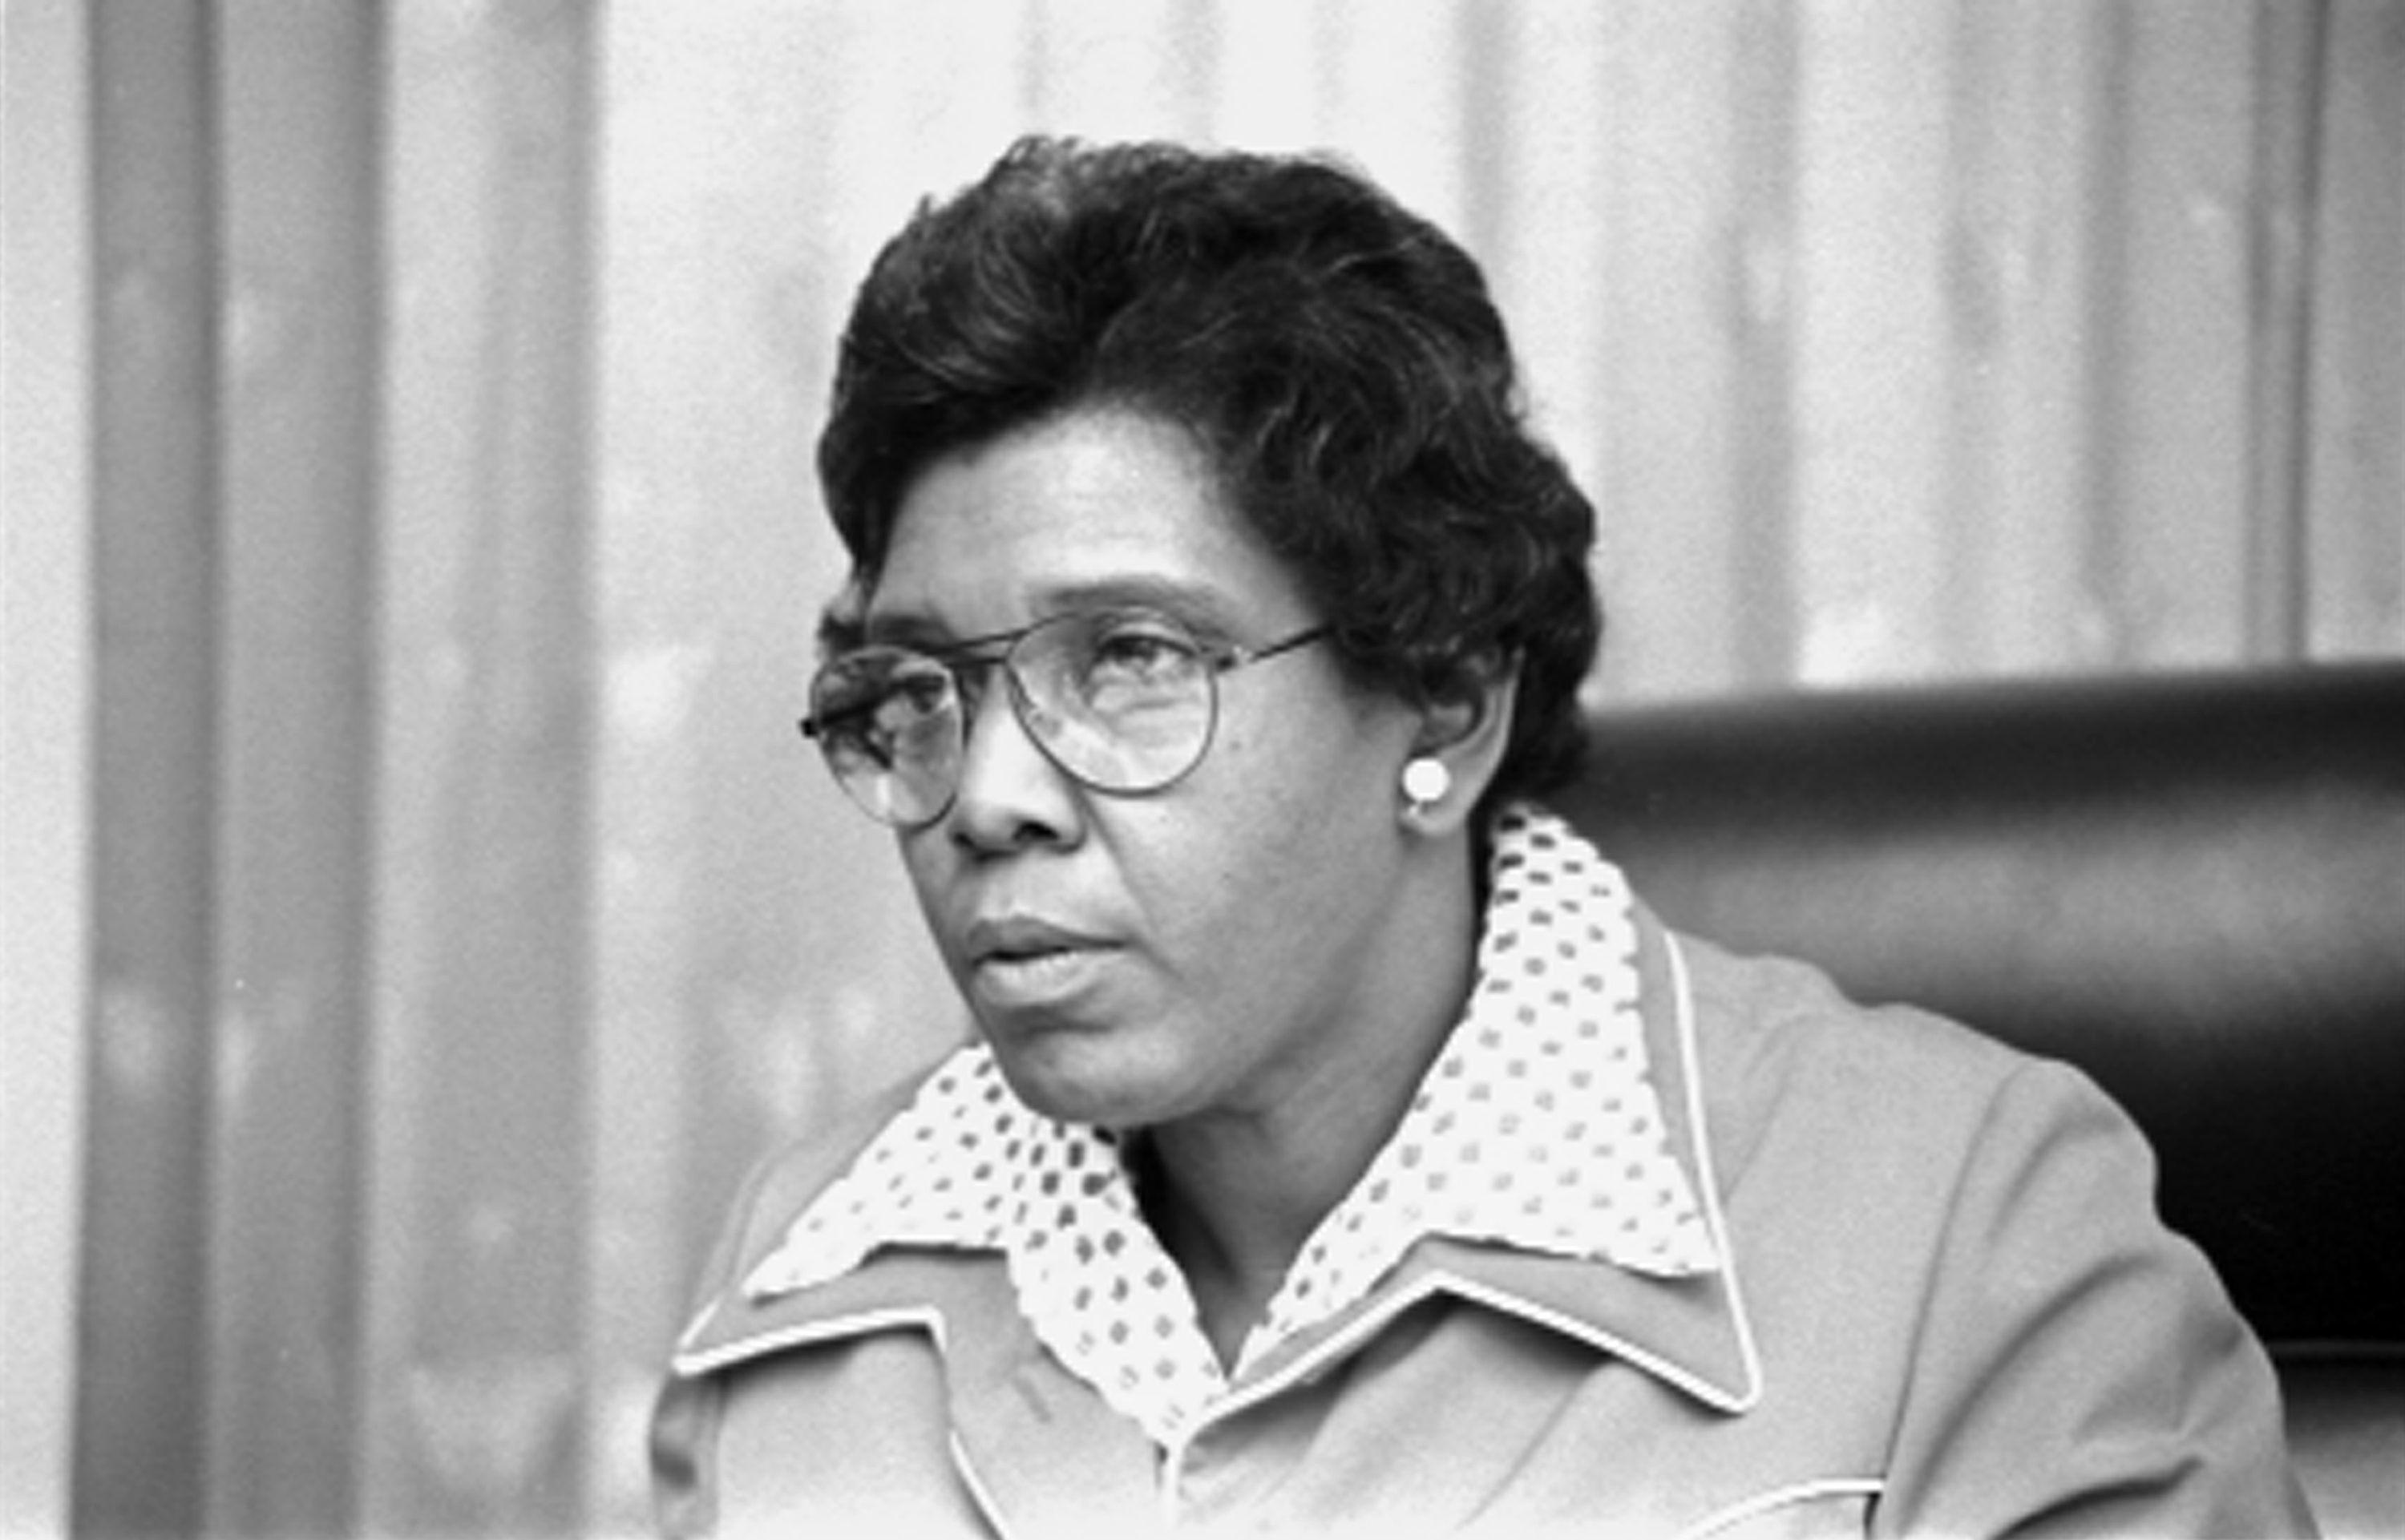 Image: Black and white photo of Jordan sitting in a leather chair speaking from behind a desk. She is wearing glasses.